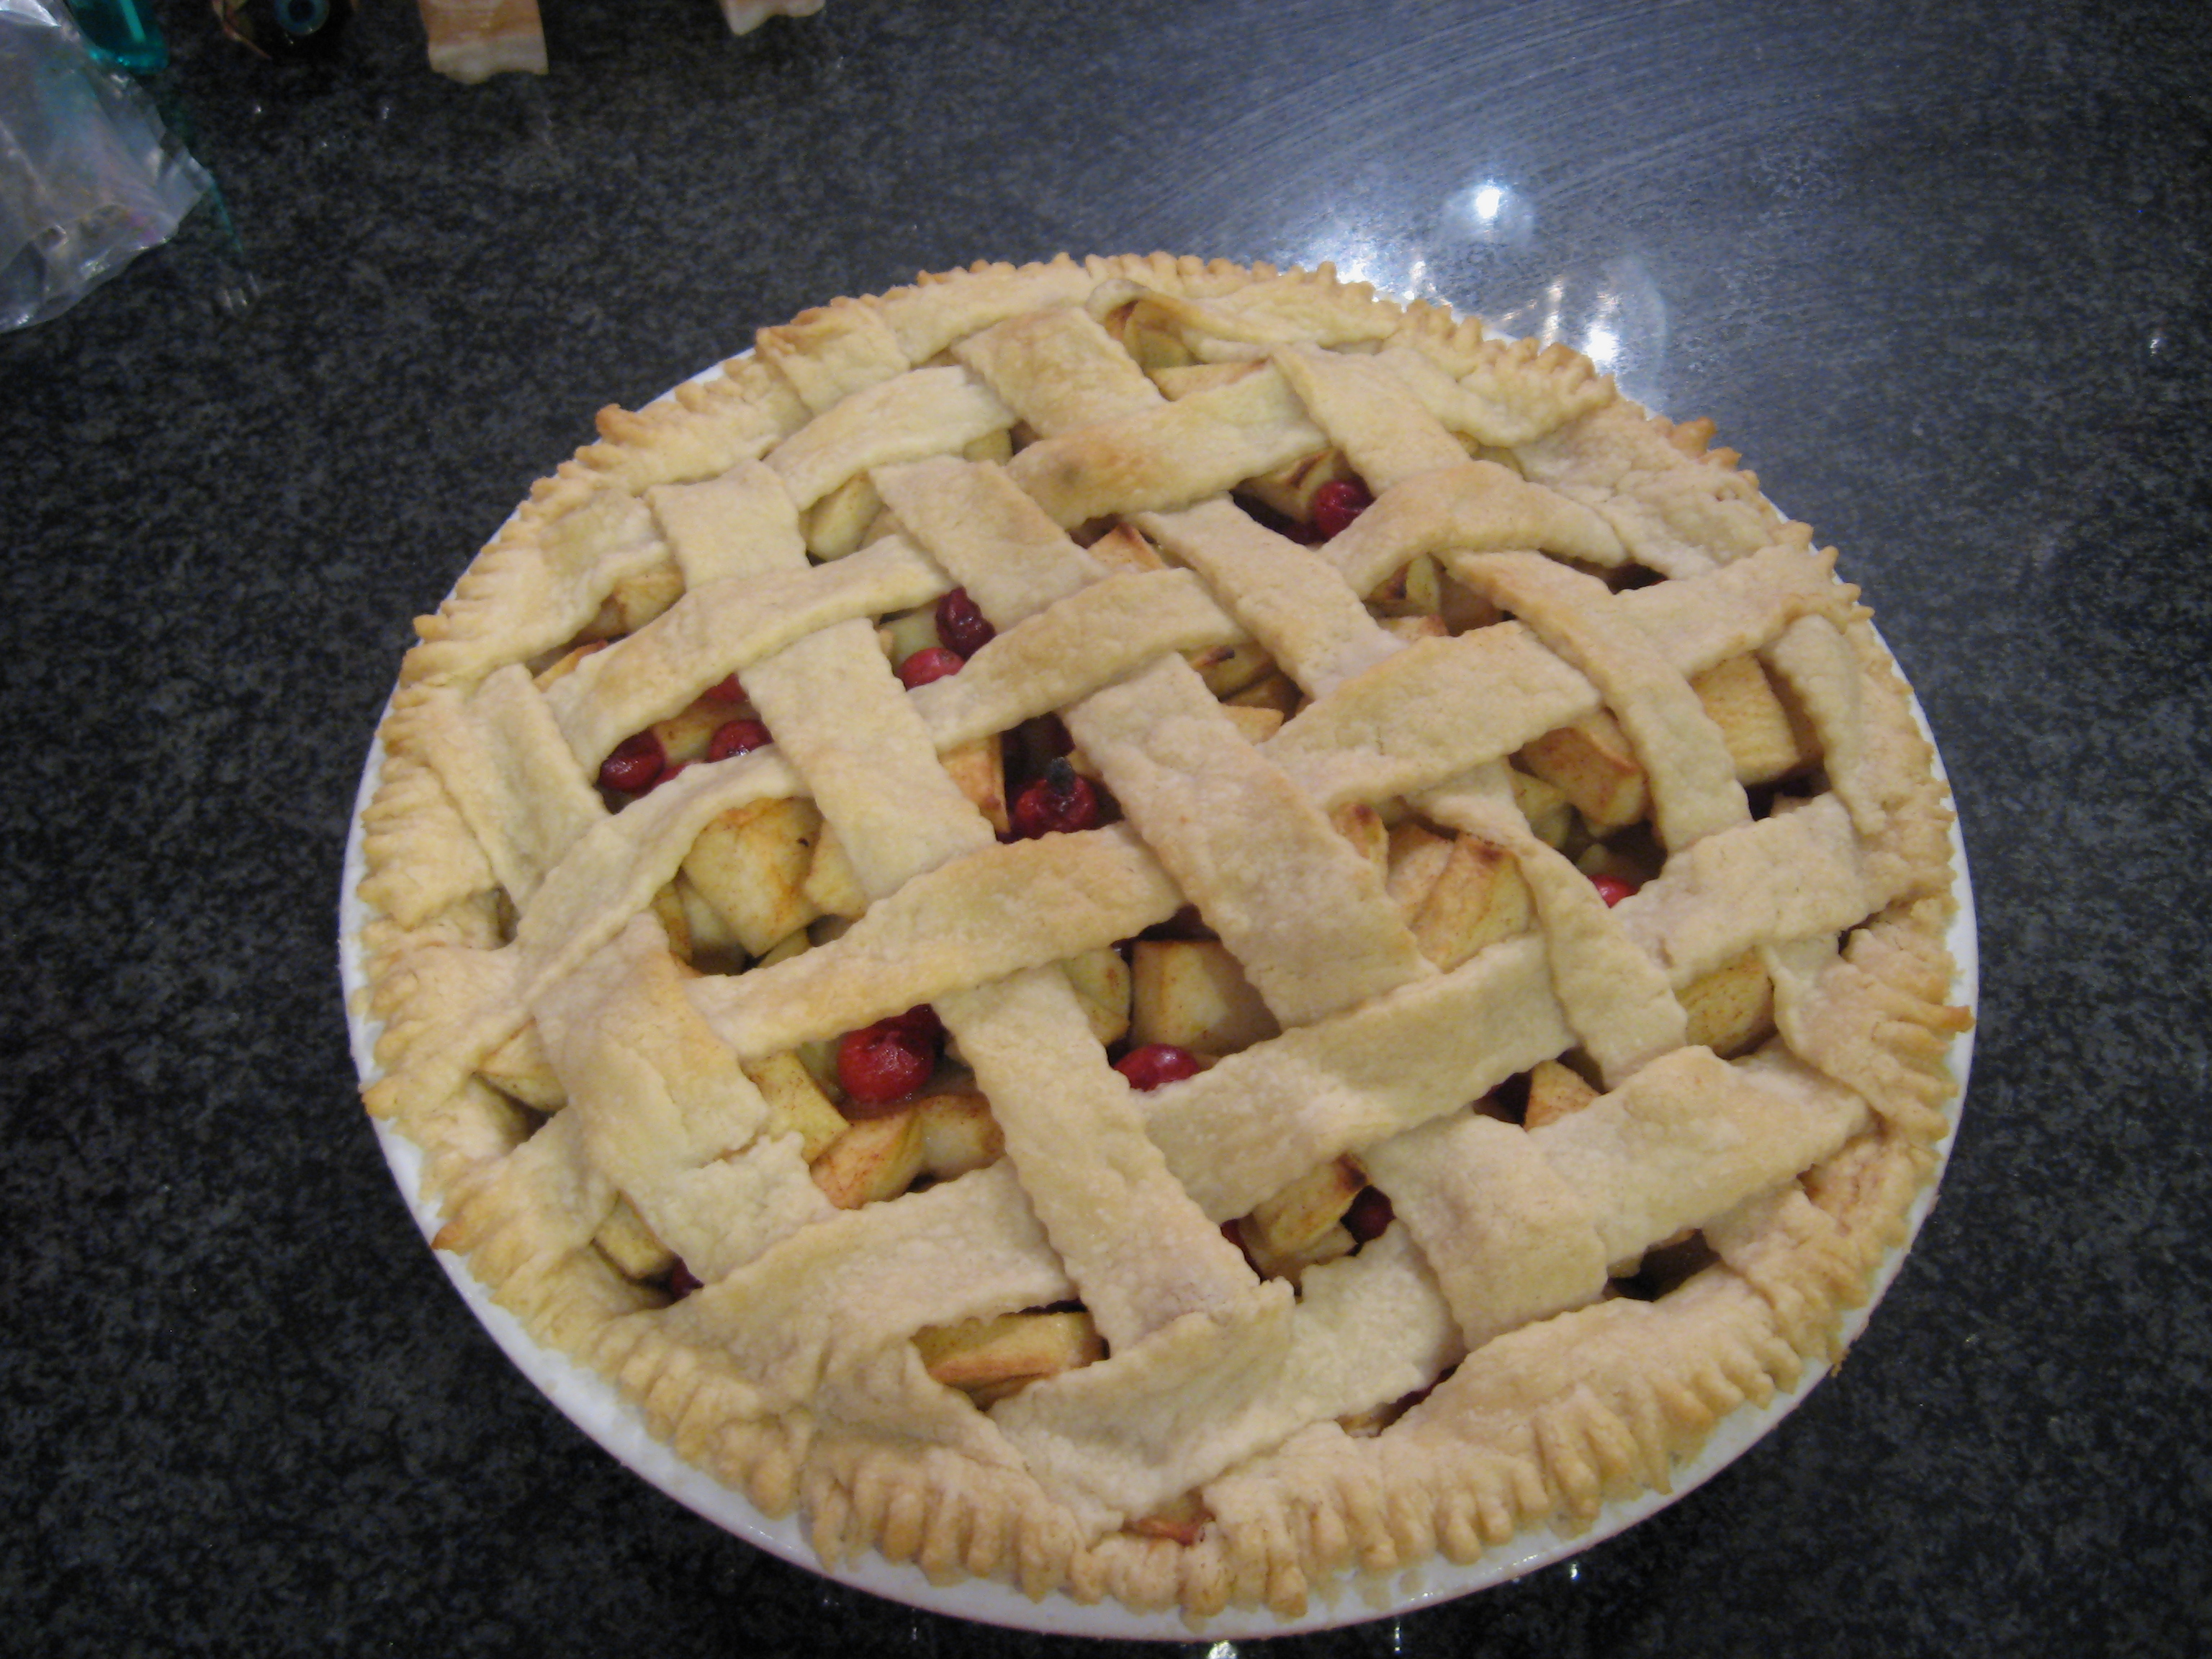 File:Apple-cranberry pie, October 2007.jpg - Wikimedia Commons